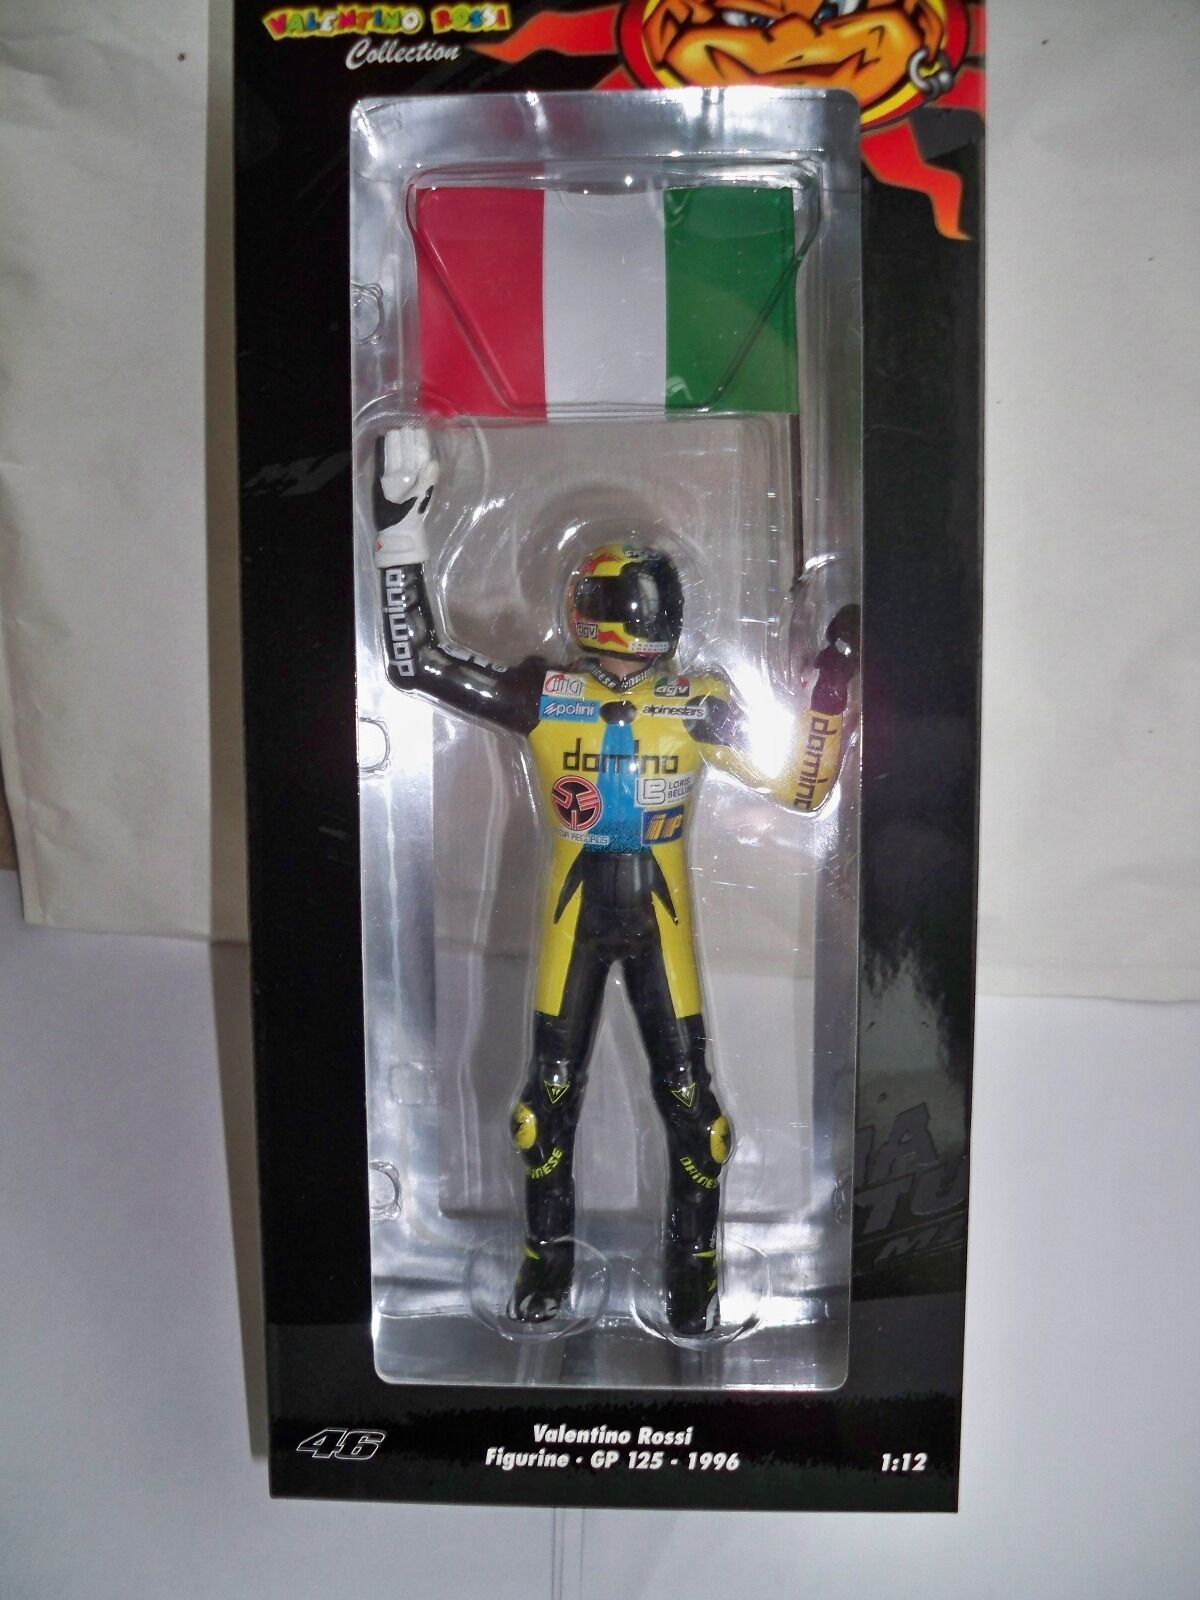 MINICHAMPS FIGURINE GP 125 1996 V.ROSSI 1 12 SCALE NEW